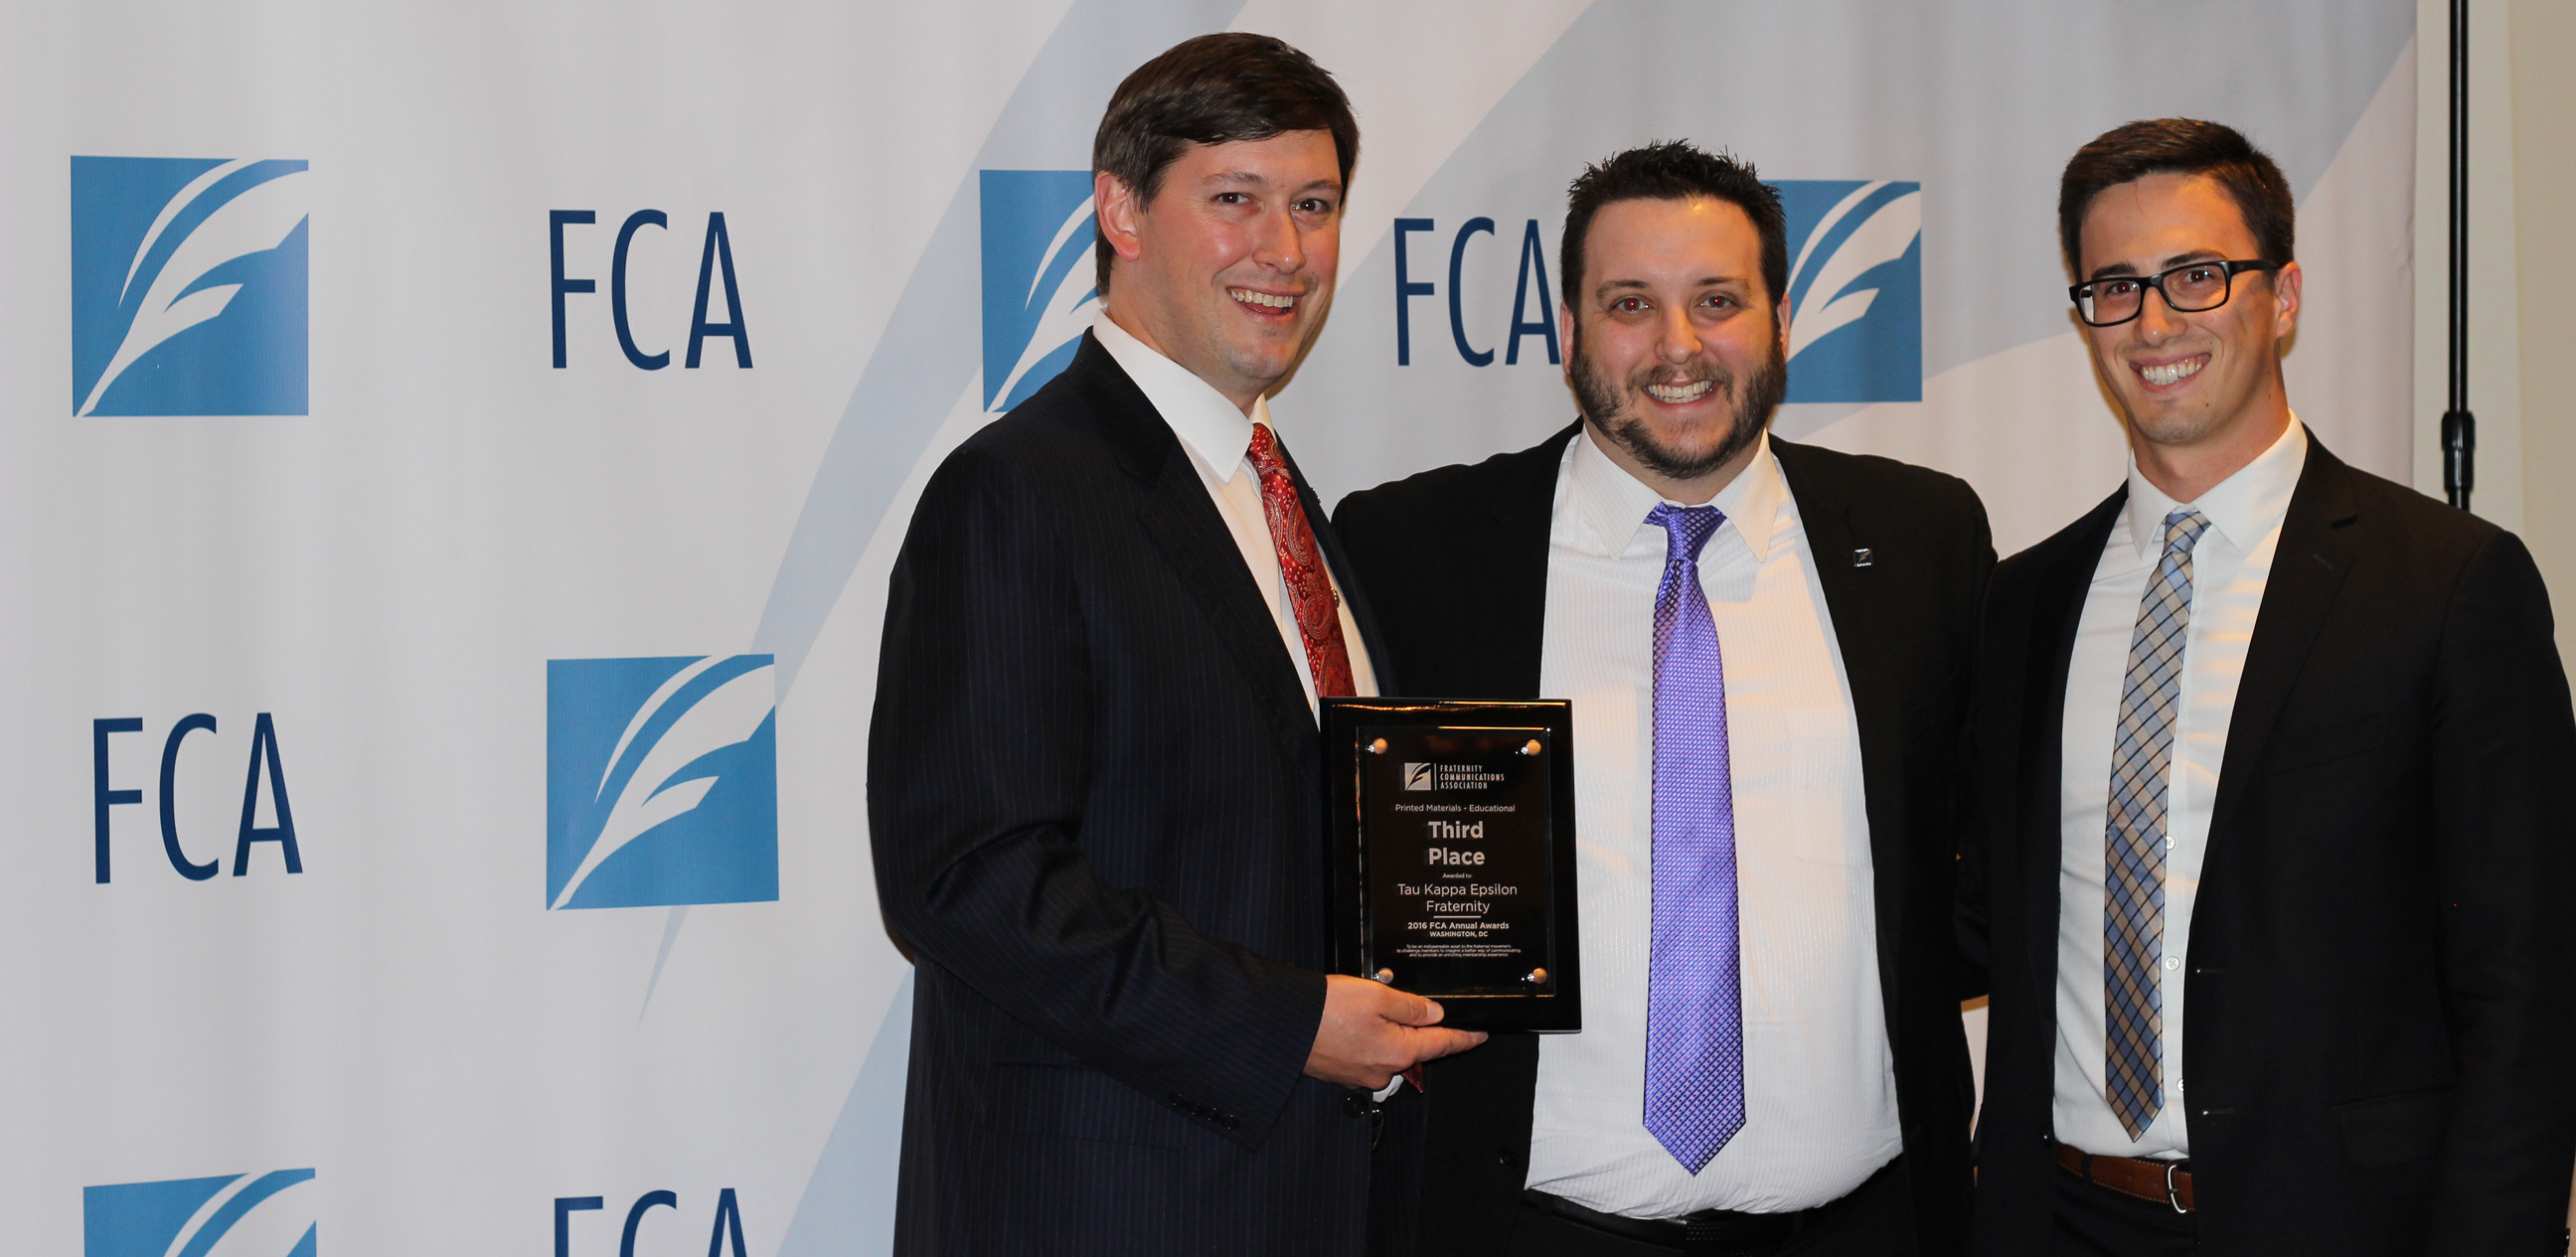 TKE Earns Two Awards at 2016 FCA Annual Conference